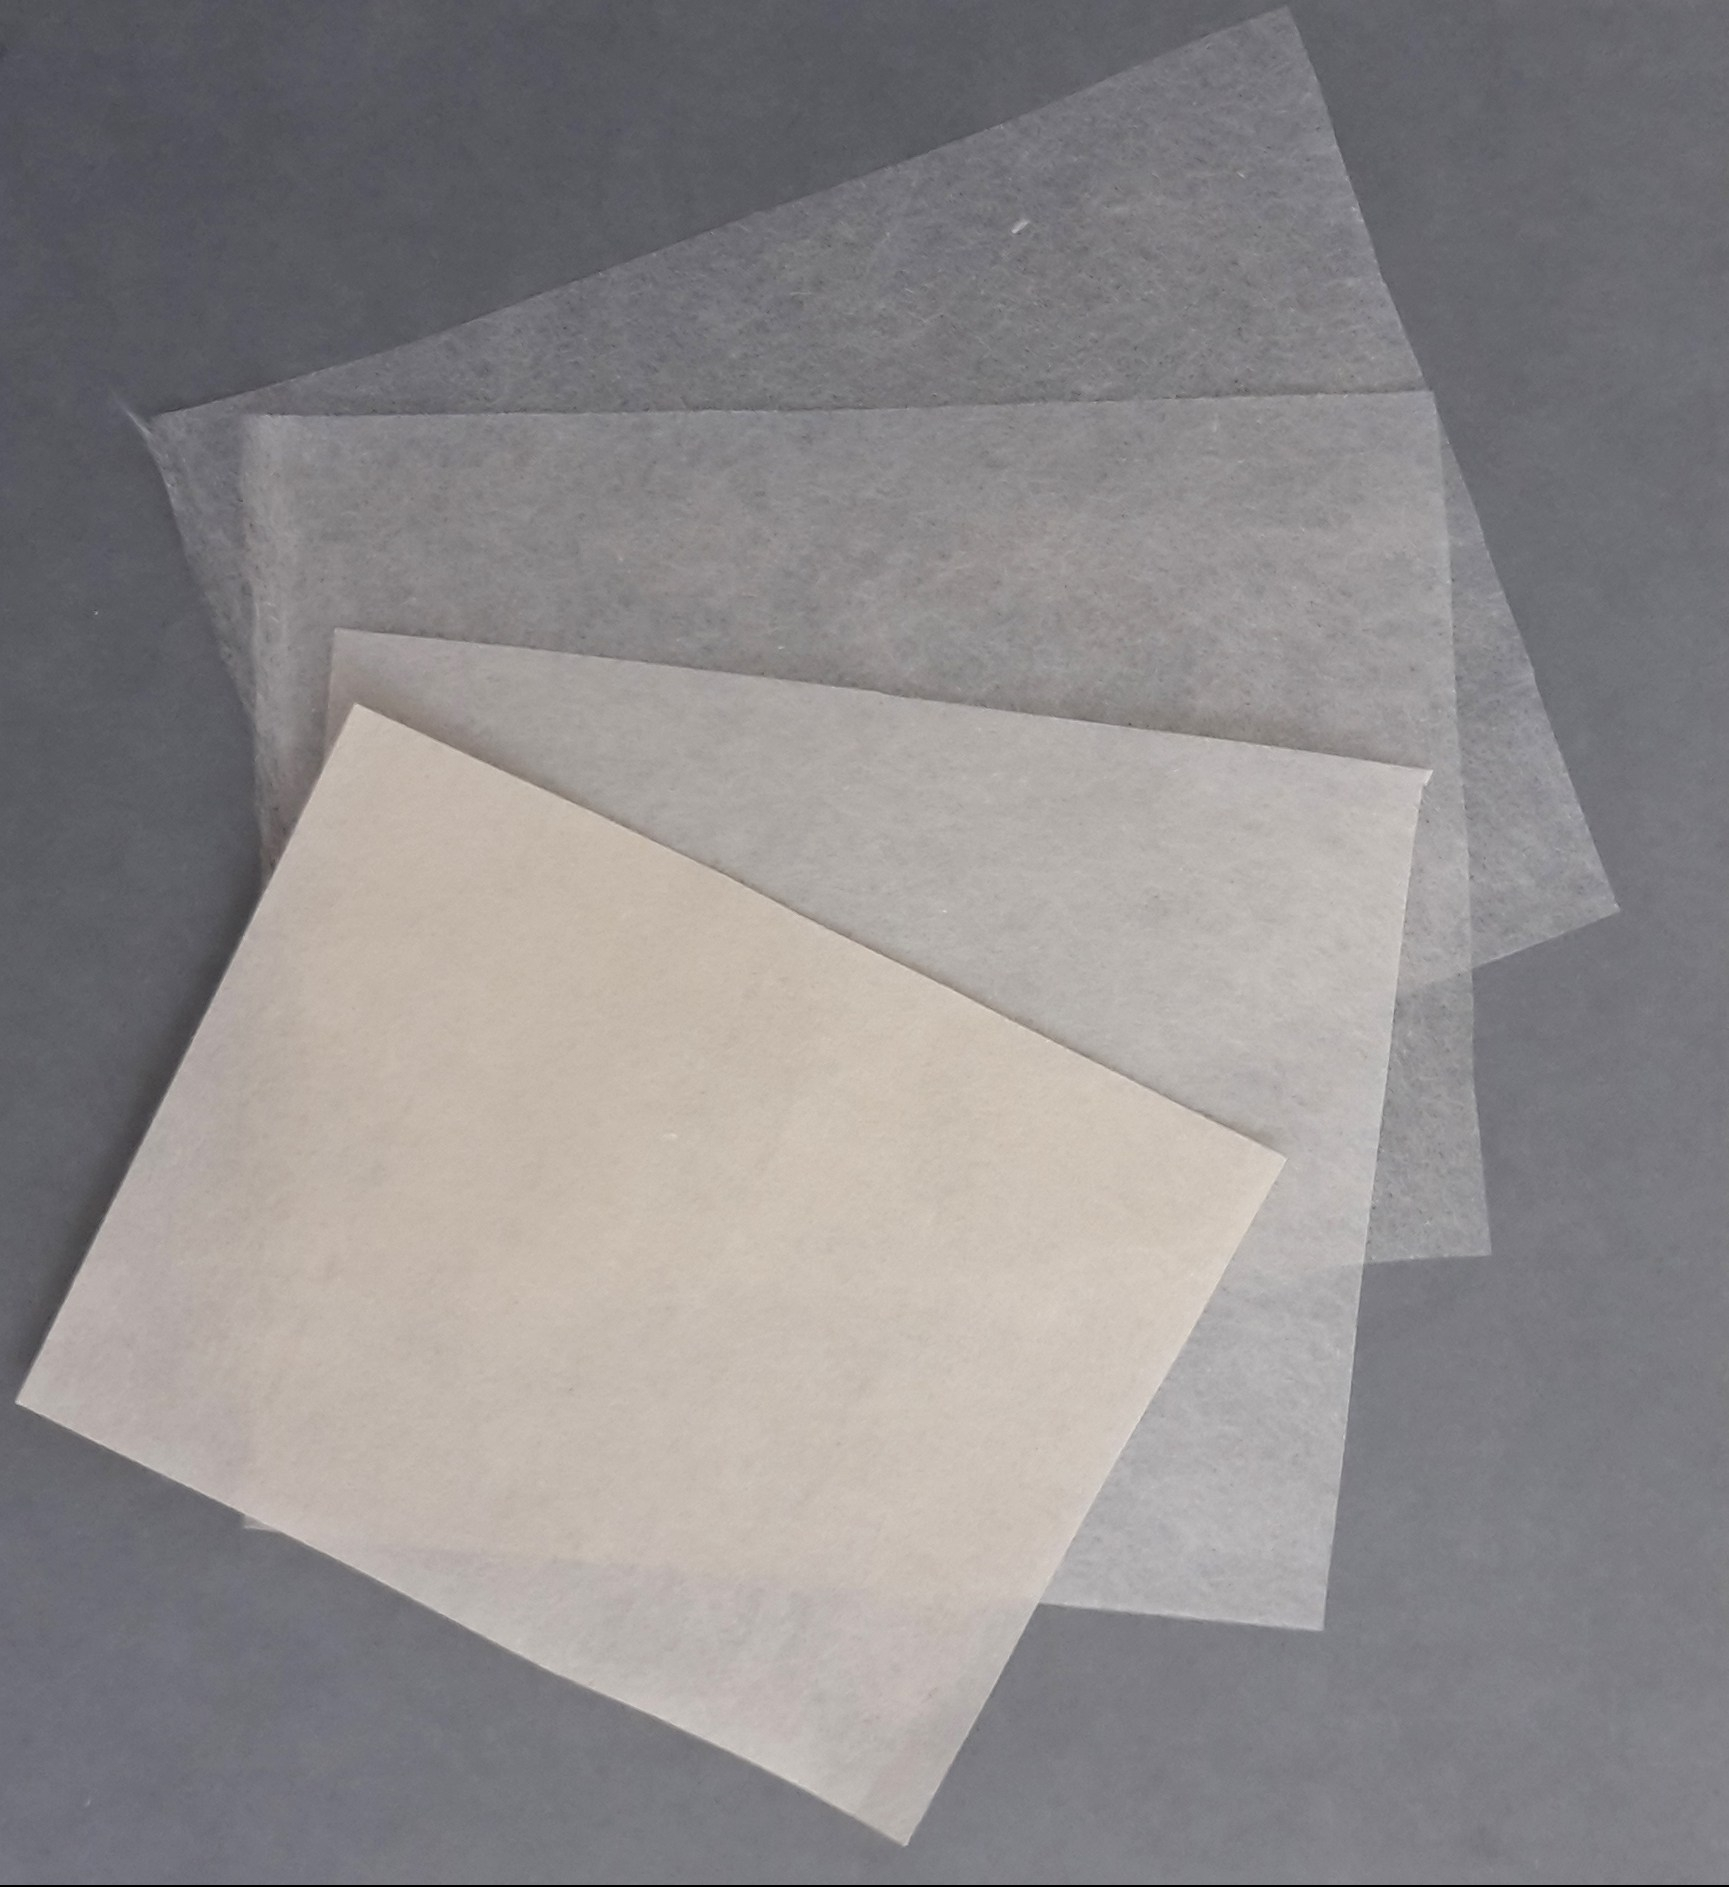 6. A selection of different Kozo fibre paper weights